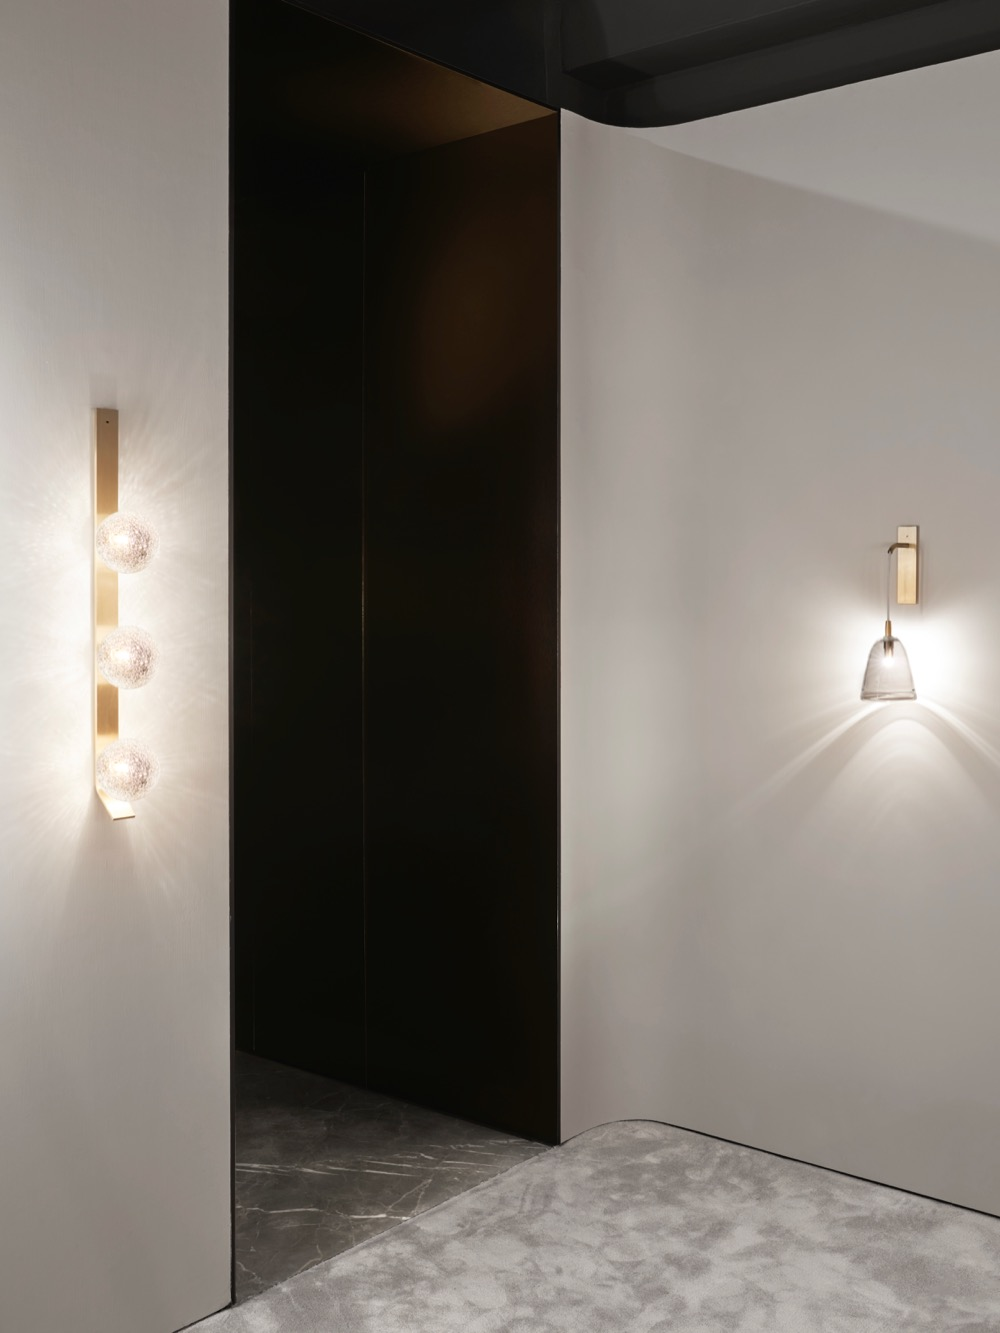 Fizi triple wall sconce and Ici glass wall sconce at Articolo's Melbourne showroom. Photograph by Sharyn Cairns.